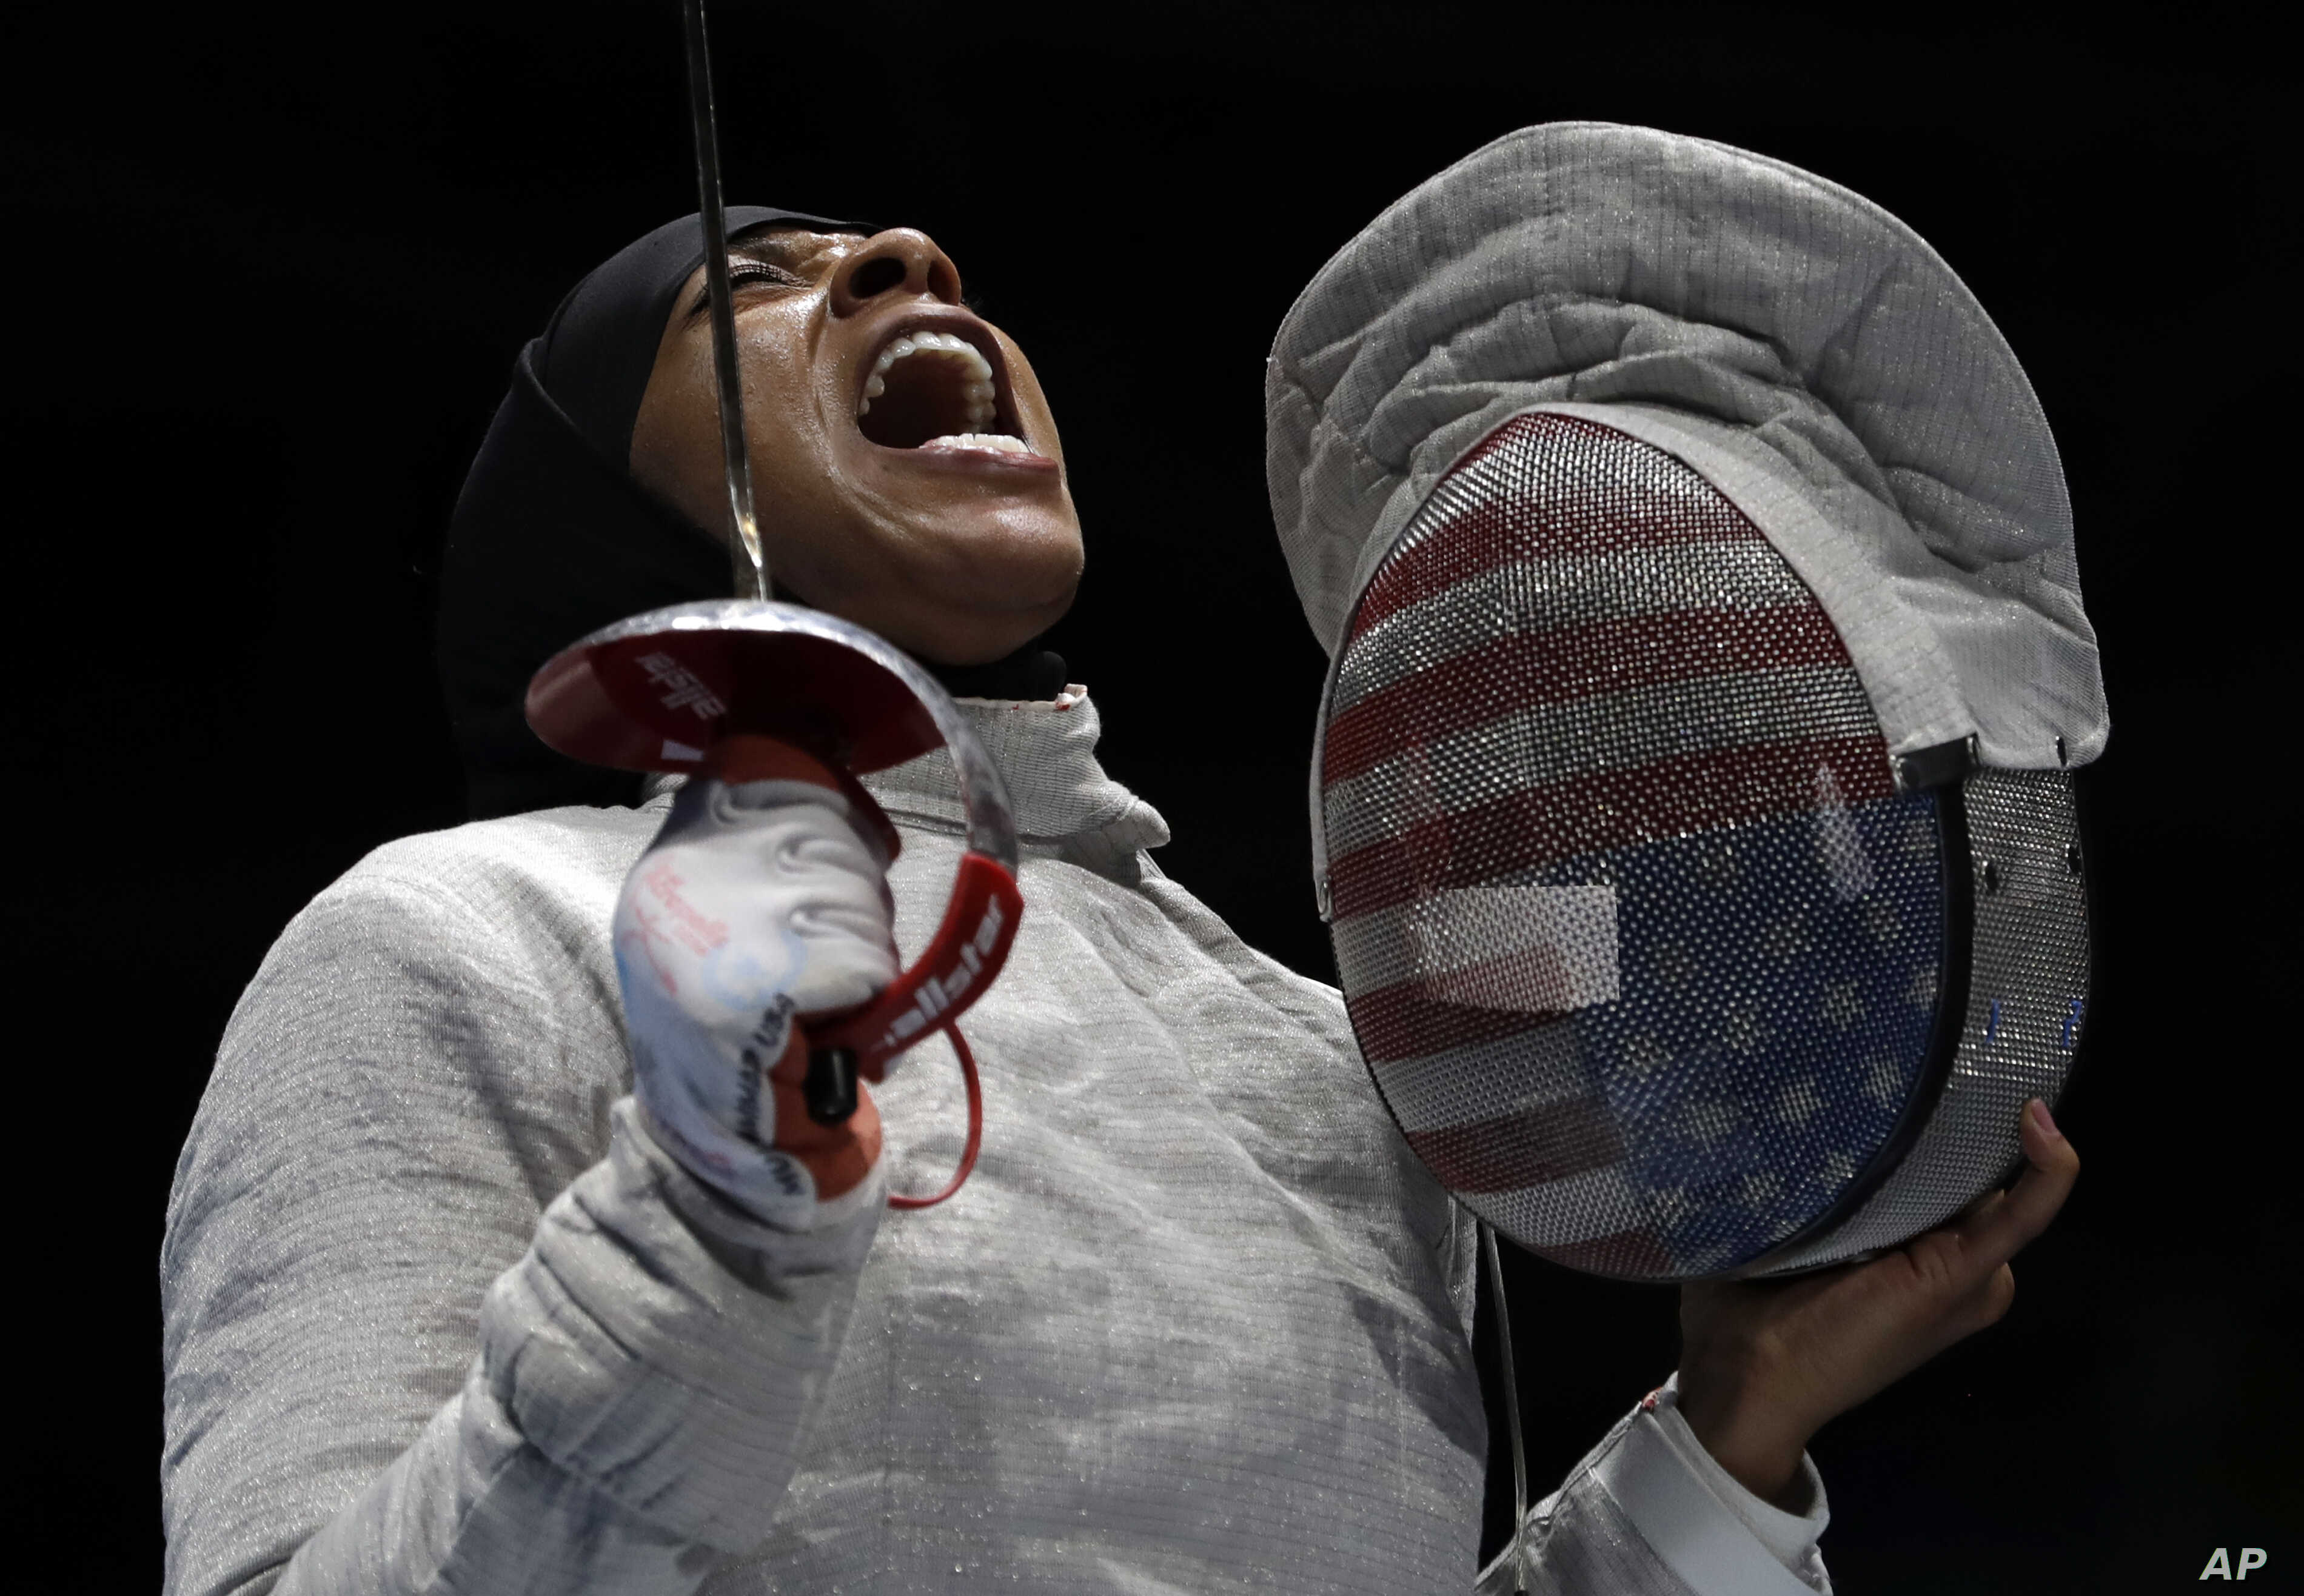 American Ibtihaj Muhammad celebrates after winning a point to Russia in a women's team sabre fencing semifinal at the 2016 Summer Olympics in Rio de Janeiro, Brazil, Aug. 13, 2016.